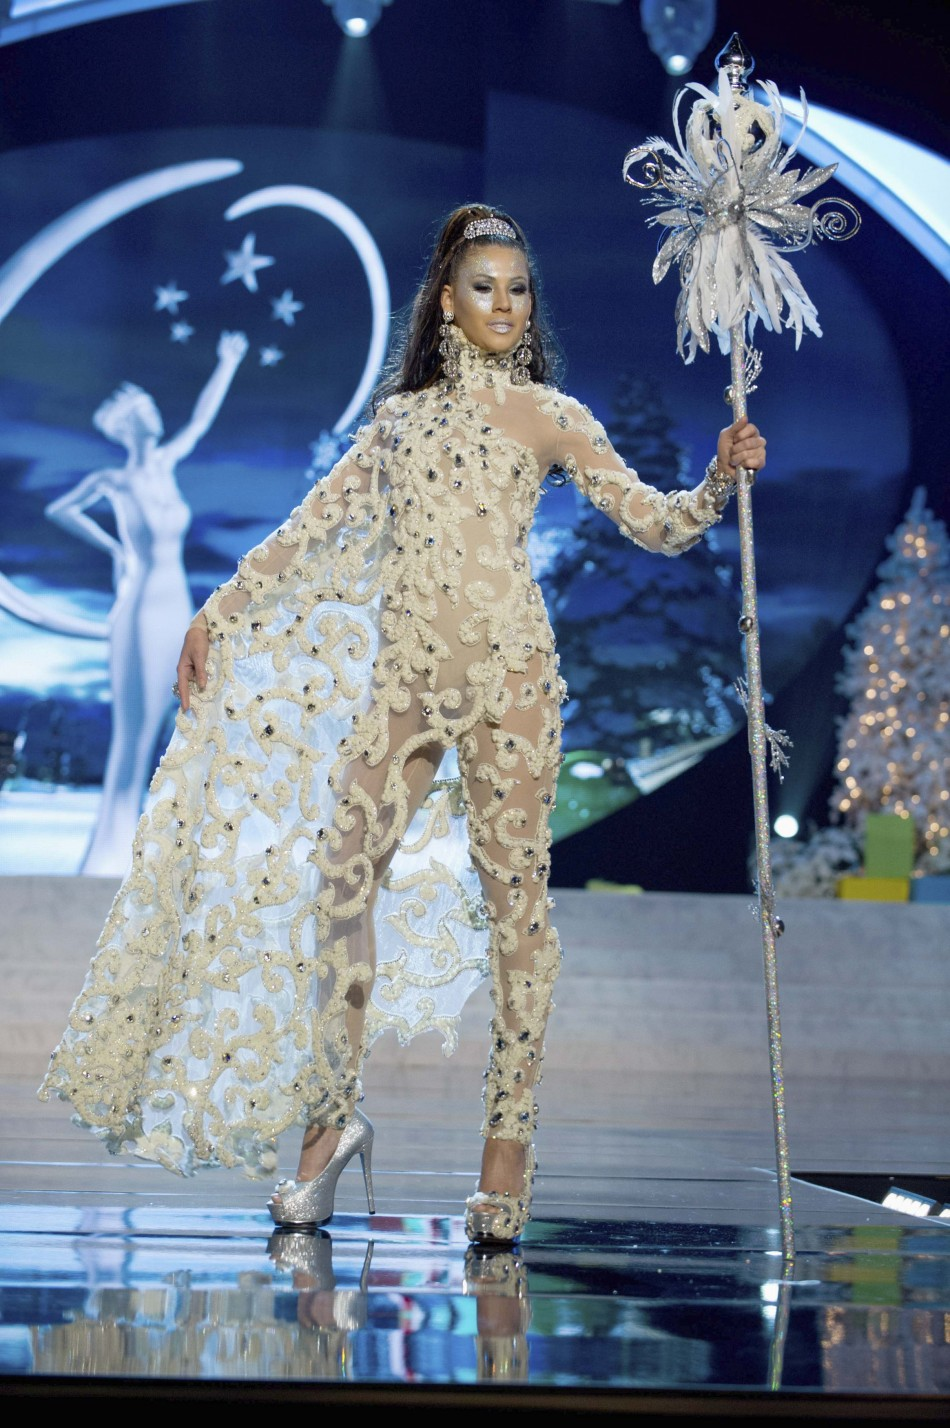 Miss Aruba Liza Helder on stage at the 2012 Miss Universe National Costume Show at PH Live in Las Vegas